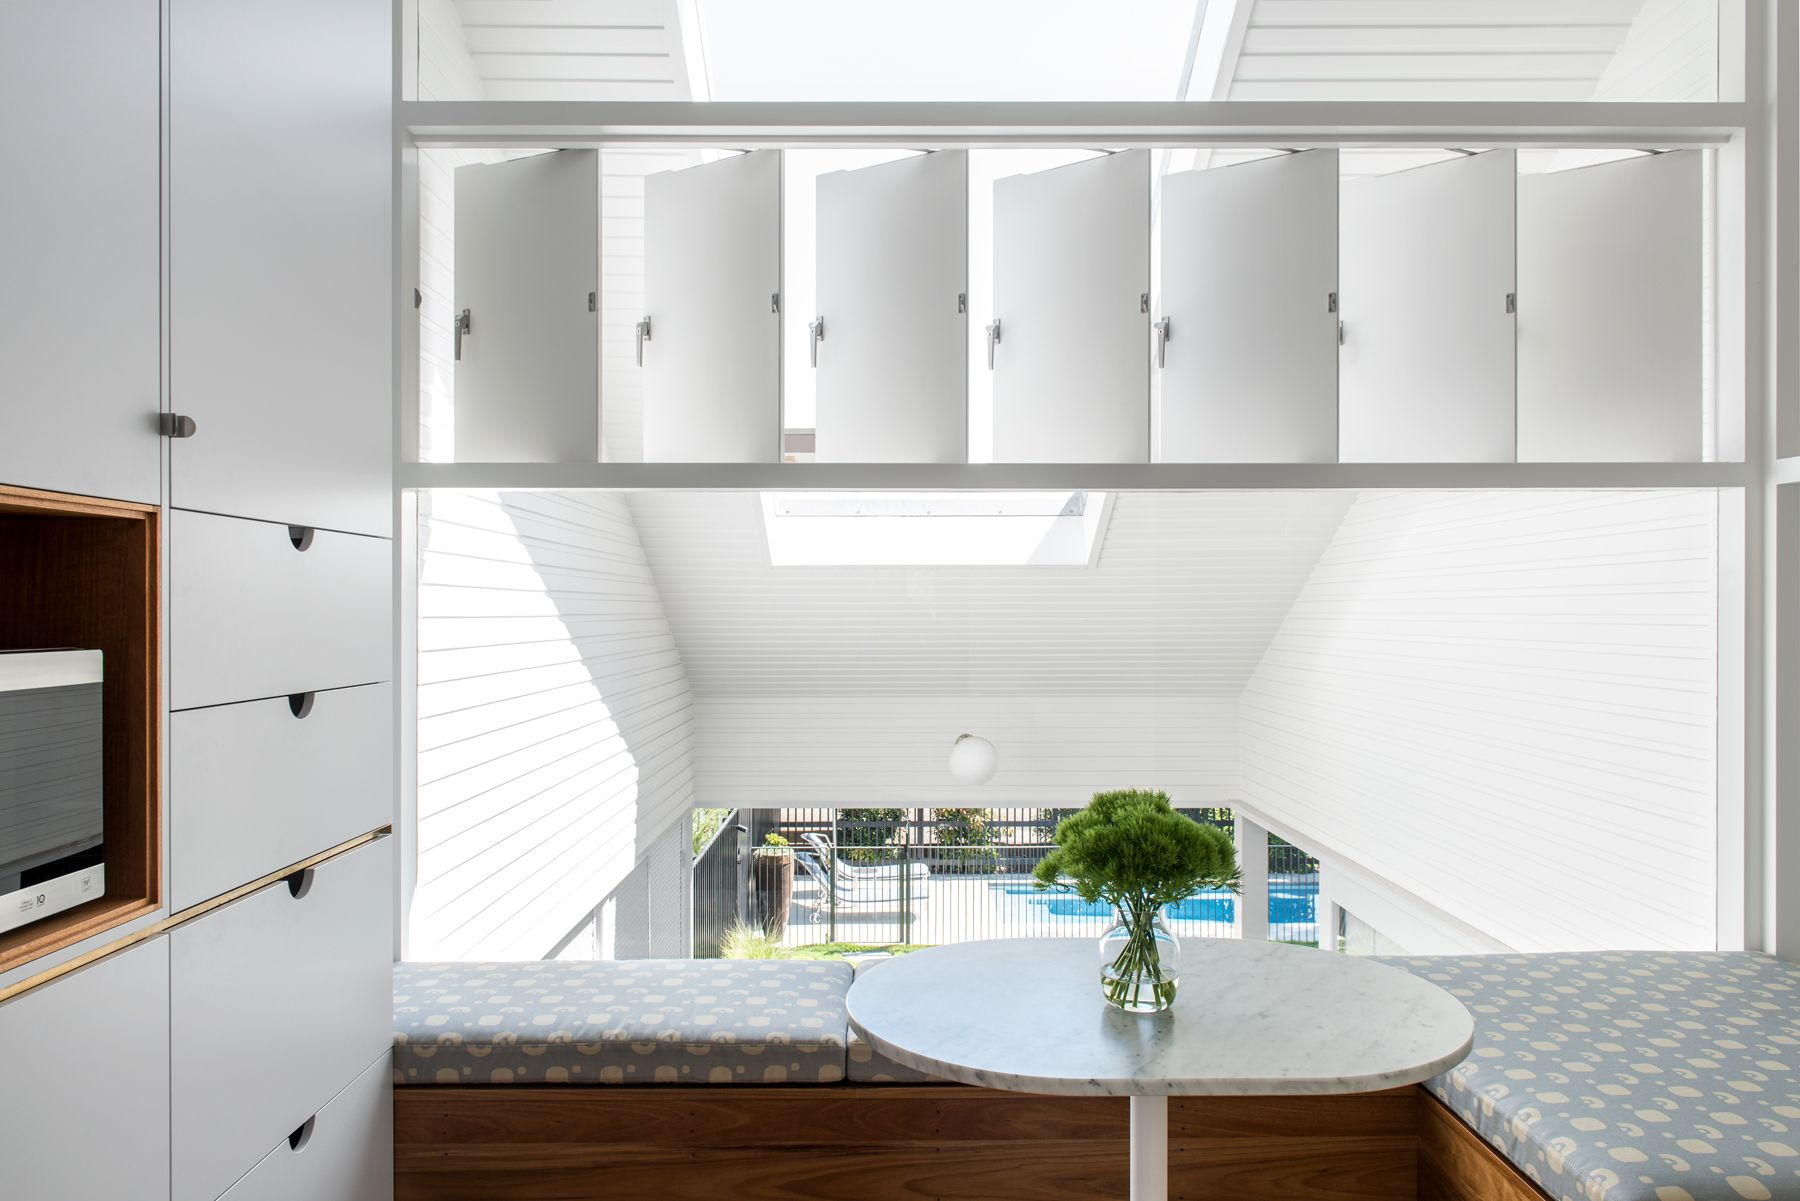 New farm cottage by brisbane interior designer georgia cannon in collaboration with vokes and peters also rh pinterest